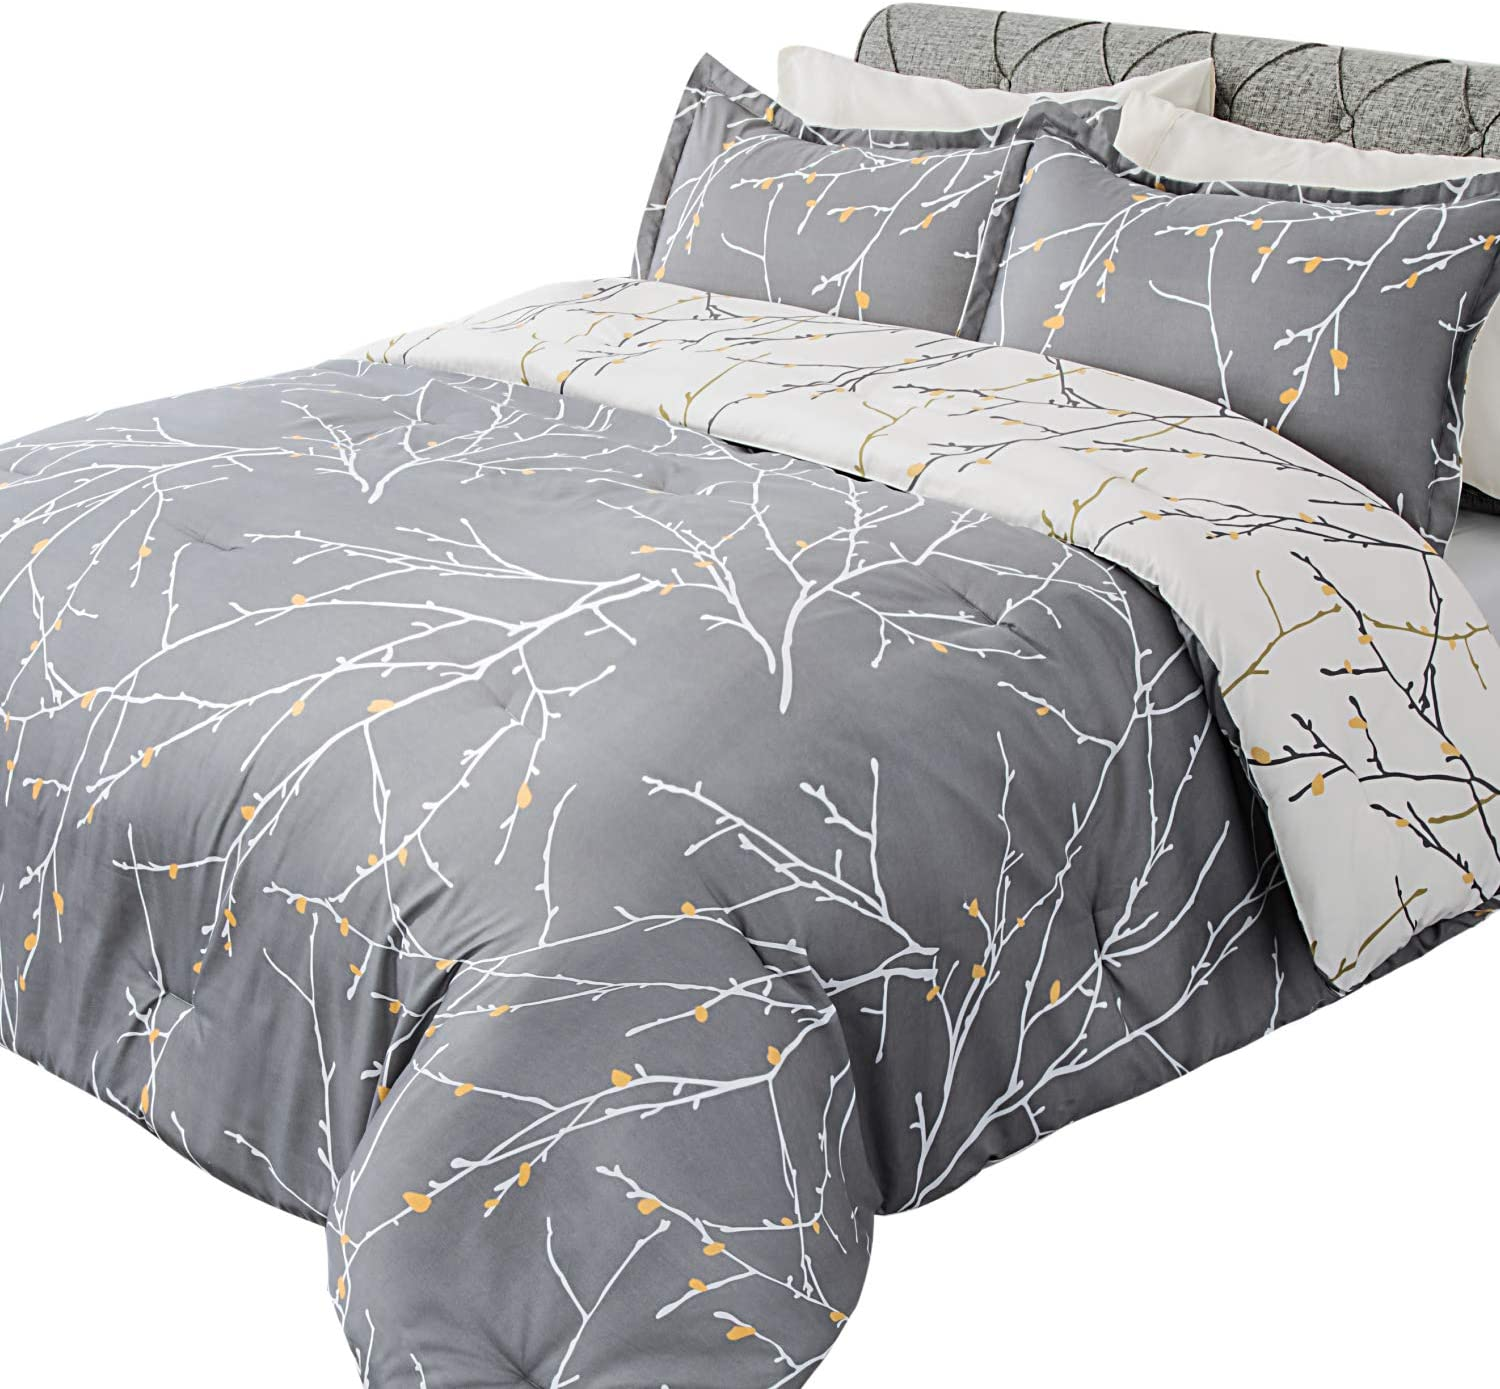 Bedsure Comforter Set Queen Size, Reversible Down Alternative Comforter Microfiber Duvet Sets (1 Comforter + 2 Pillow Shams), Tree Branch Floral, Grey&Ivory